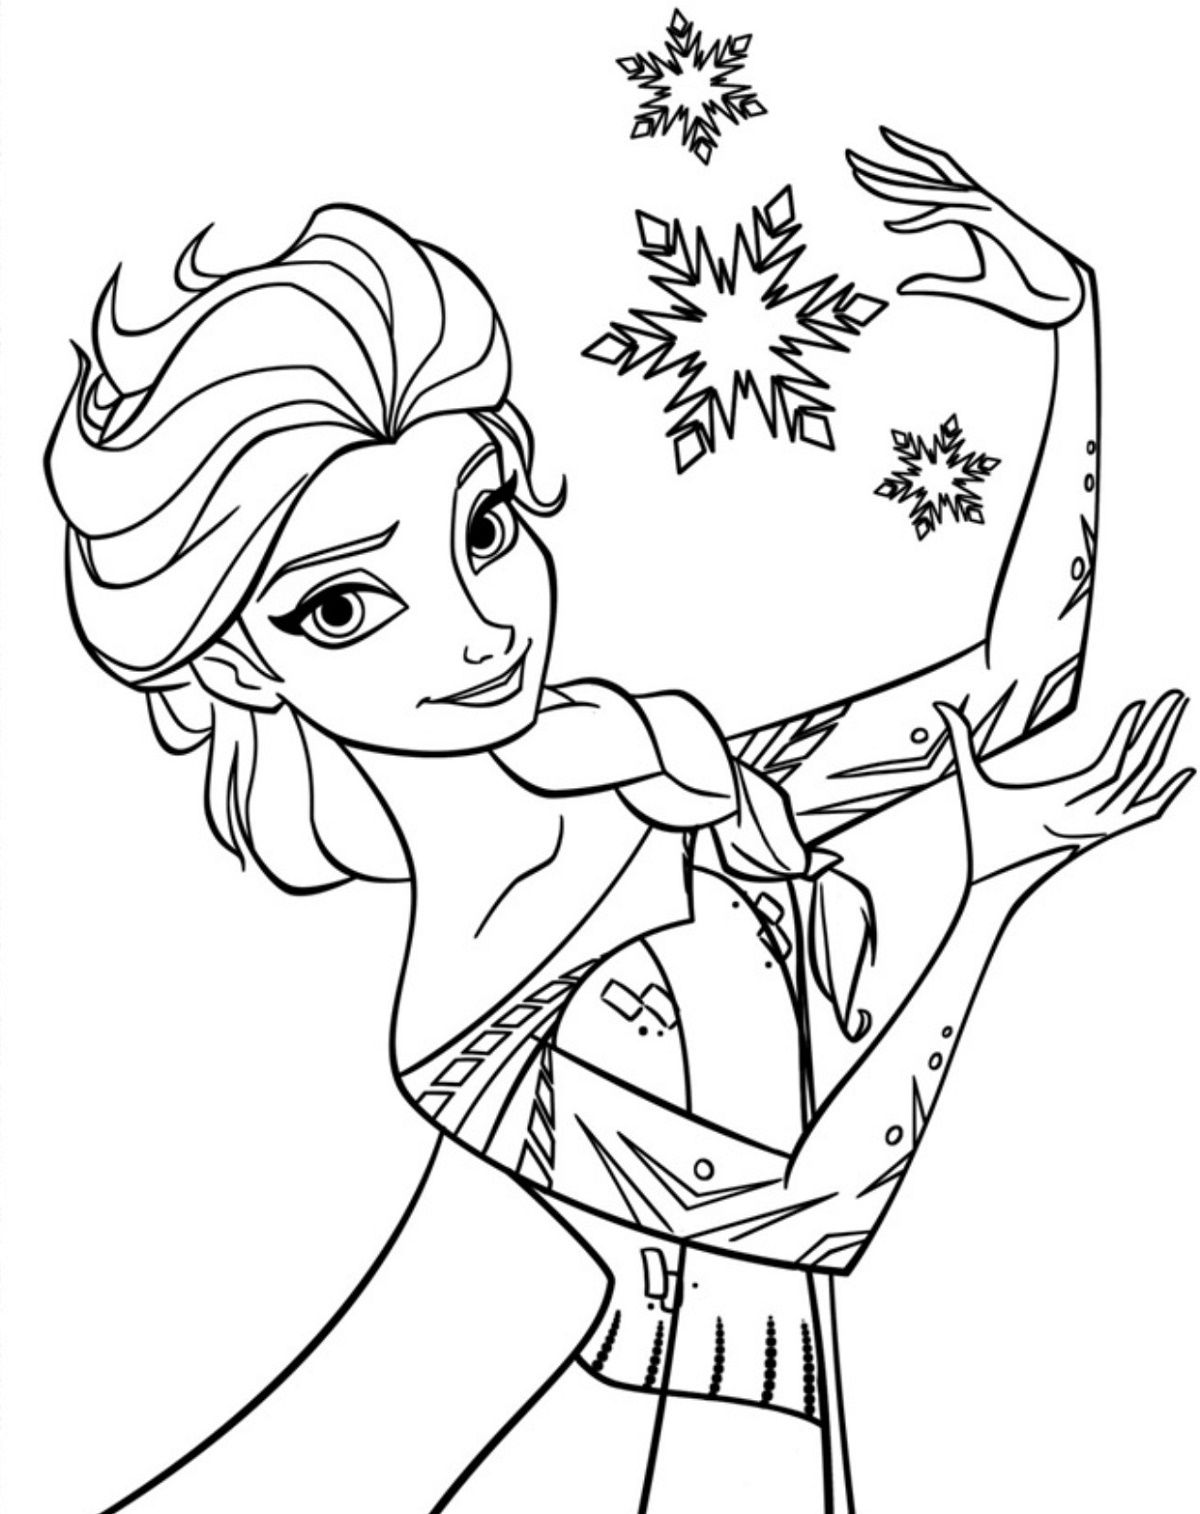 Elsa Coloring Pages K5 Worksheets In 2020 Elsa Coloring Pages Disney Princess Coloring Pages Frozen Coloring Sheets